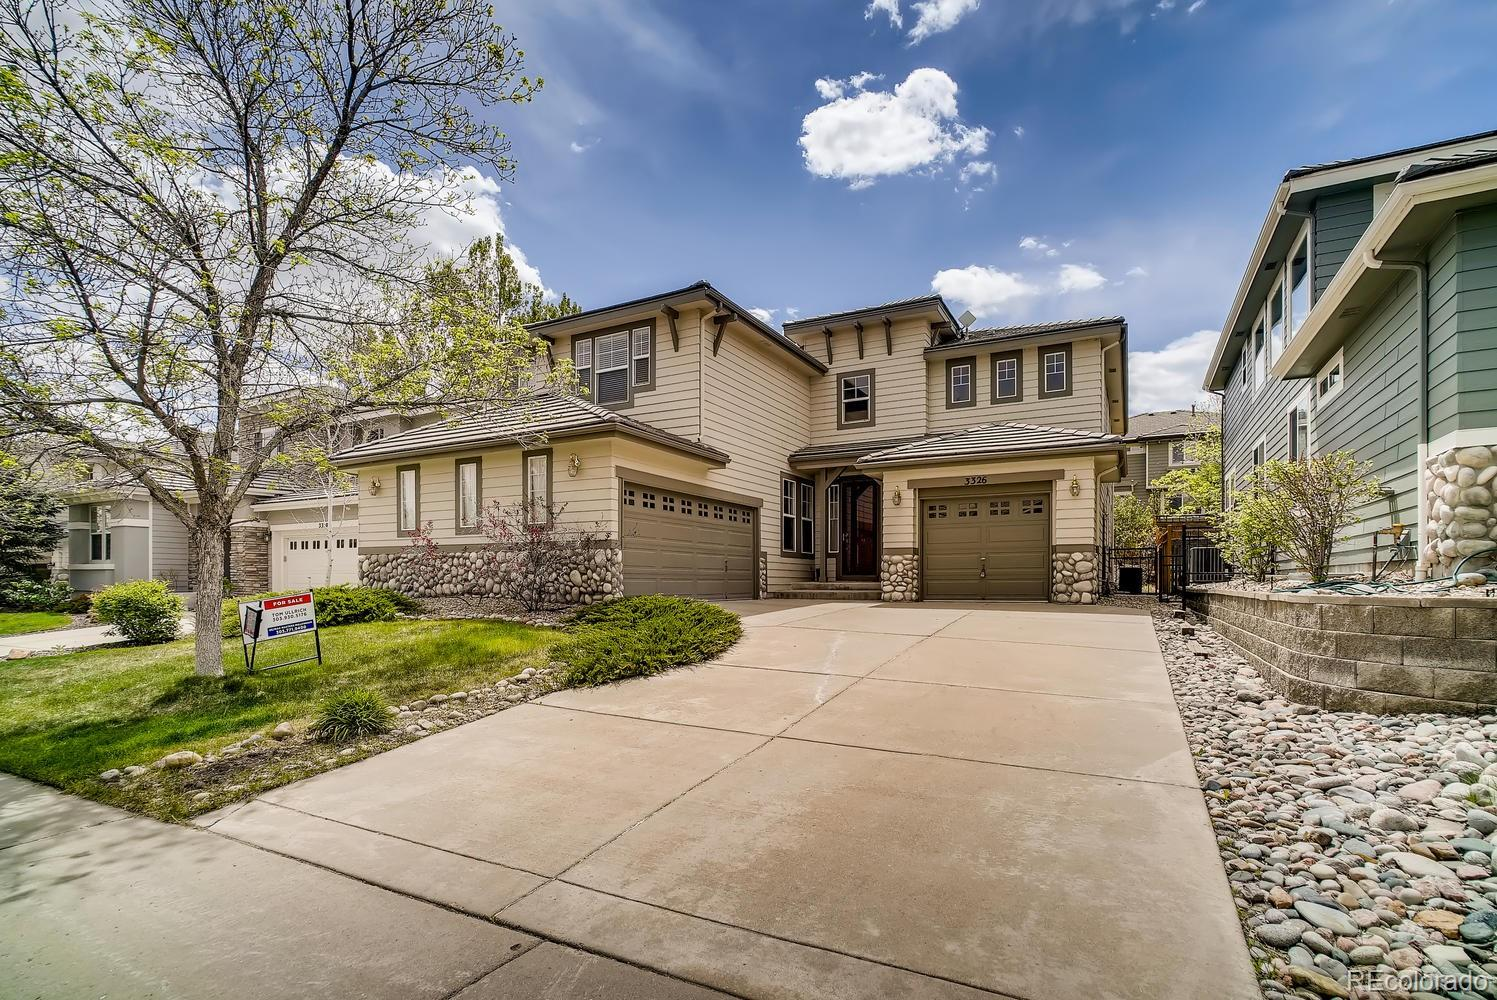 This gorgeous 2 story in the Westridge area of Highlands Ranch features 3 beds, 3 full baths, living room, family room, kitchen, loft, unfinished basement, 2 + 1 car garages and more. The many windows and 2-story vaulted ceiling keep this home bright and cheerful.  The open kitchen is sure to be a main gathering point and features stainless appliances, slab granite counters, gas cooktop, double ovens, island and opens to the family room.  Great for entertaining.  Finish the basement for even more living space.  Neutral tones make it easy to picture yourself calling this one home. Pride of ownership shines throughout.  An energy efficient furnace, central air and gas fireplace keep this home comfortable all year long. Amenities abound is this great neighborhood. Fabulous location with close proximity to the Highline Canal Bike and Walking Trail, Redstone Park and Highlands Ranch Golf Course. An easy commute to Denver, Lone Tree, the DTC and beyond. You will not be disappointed.  Welcome Home!